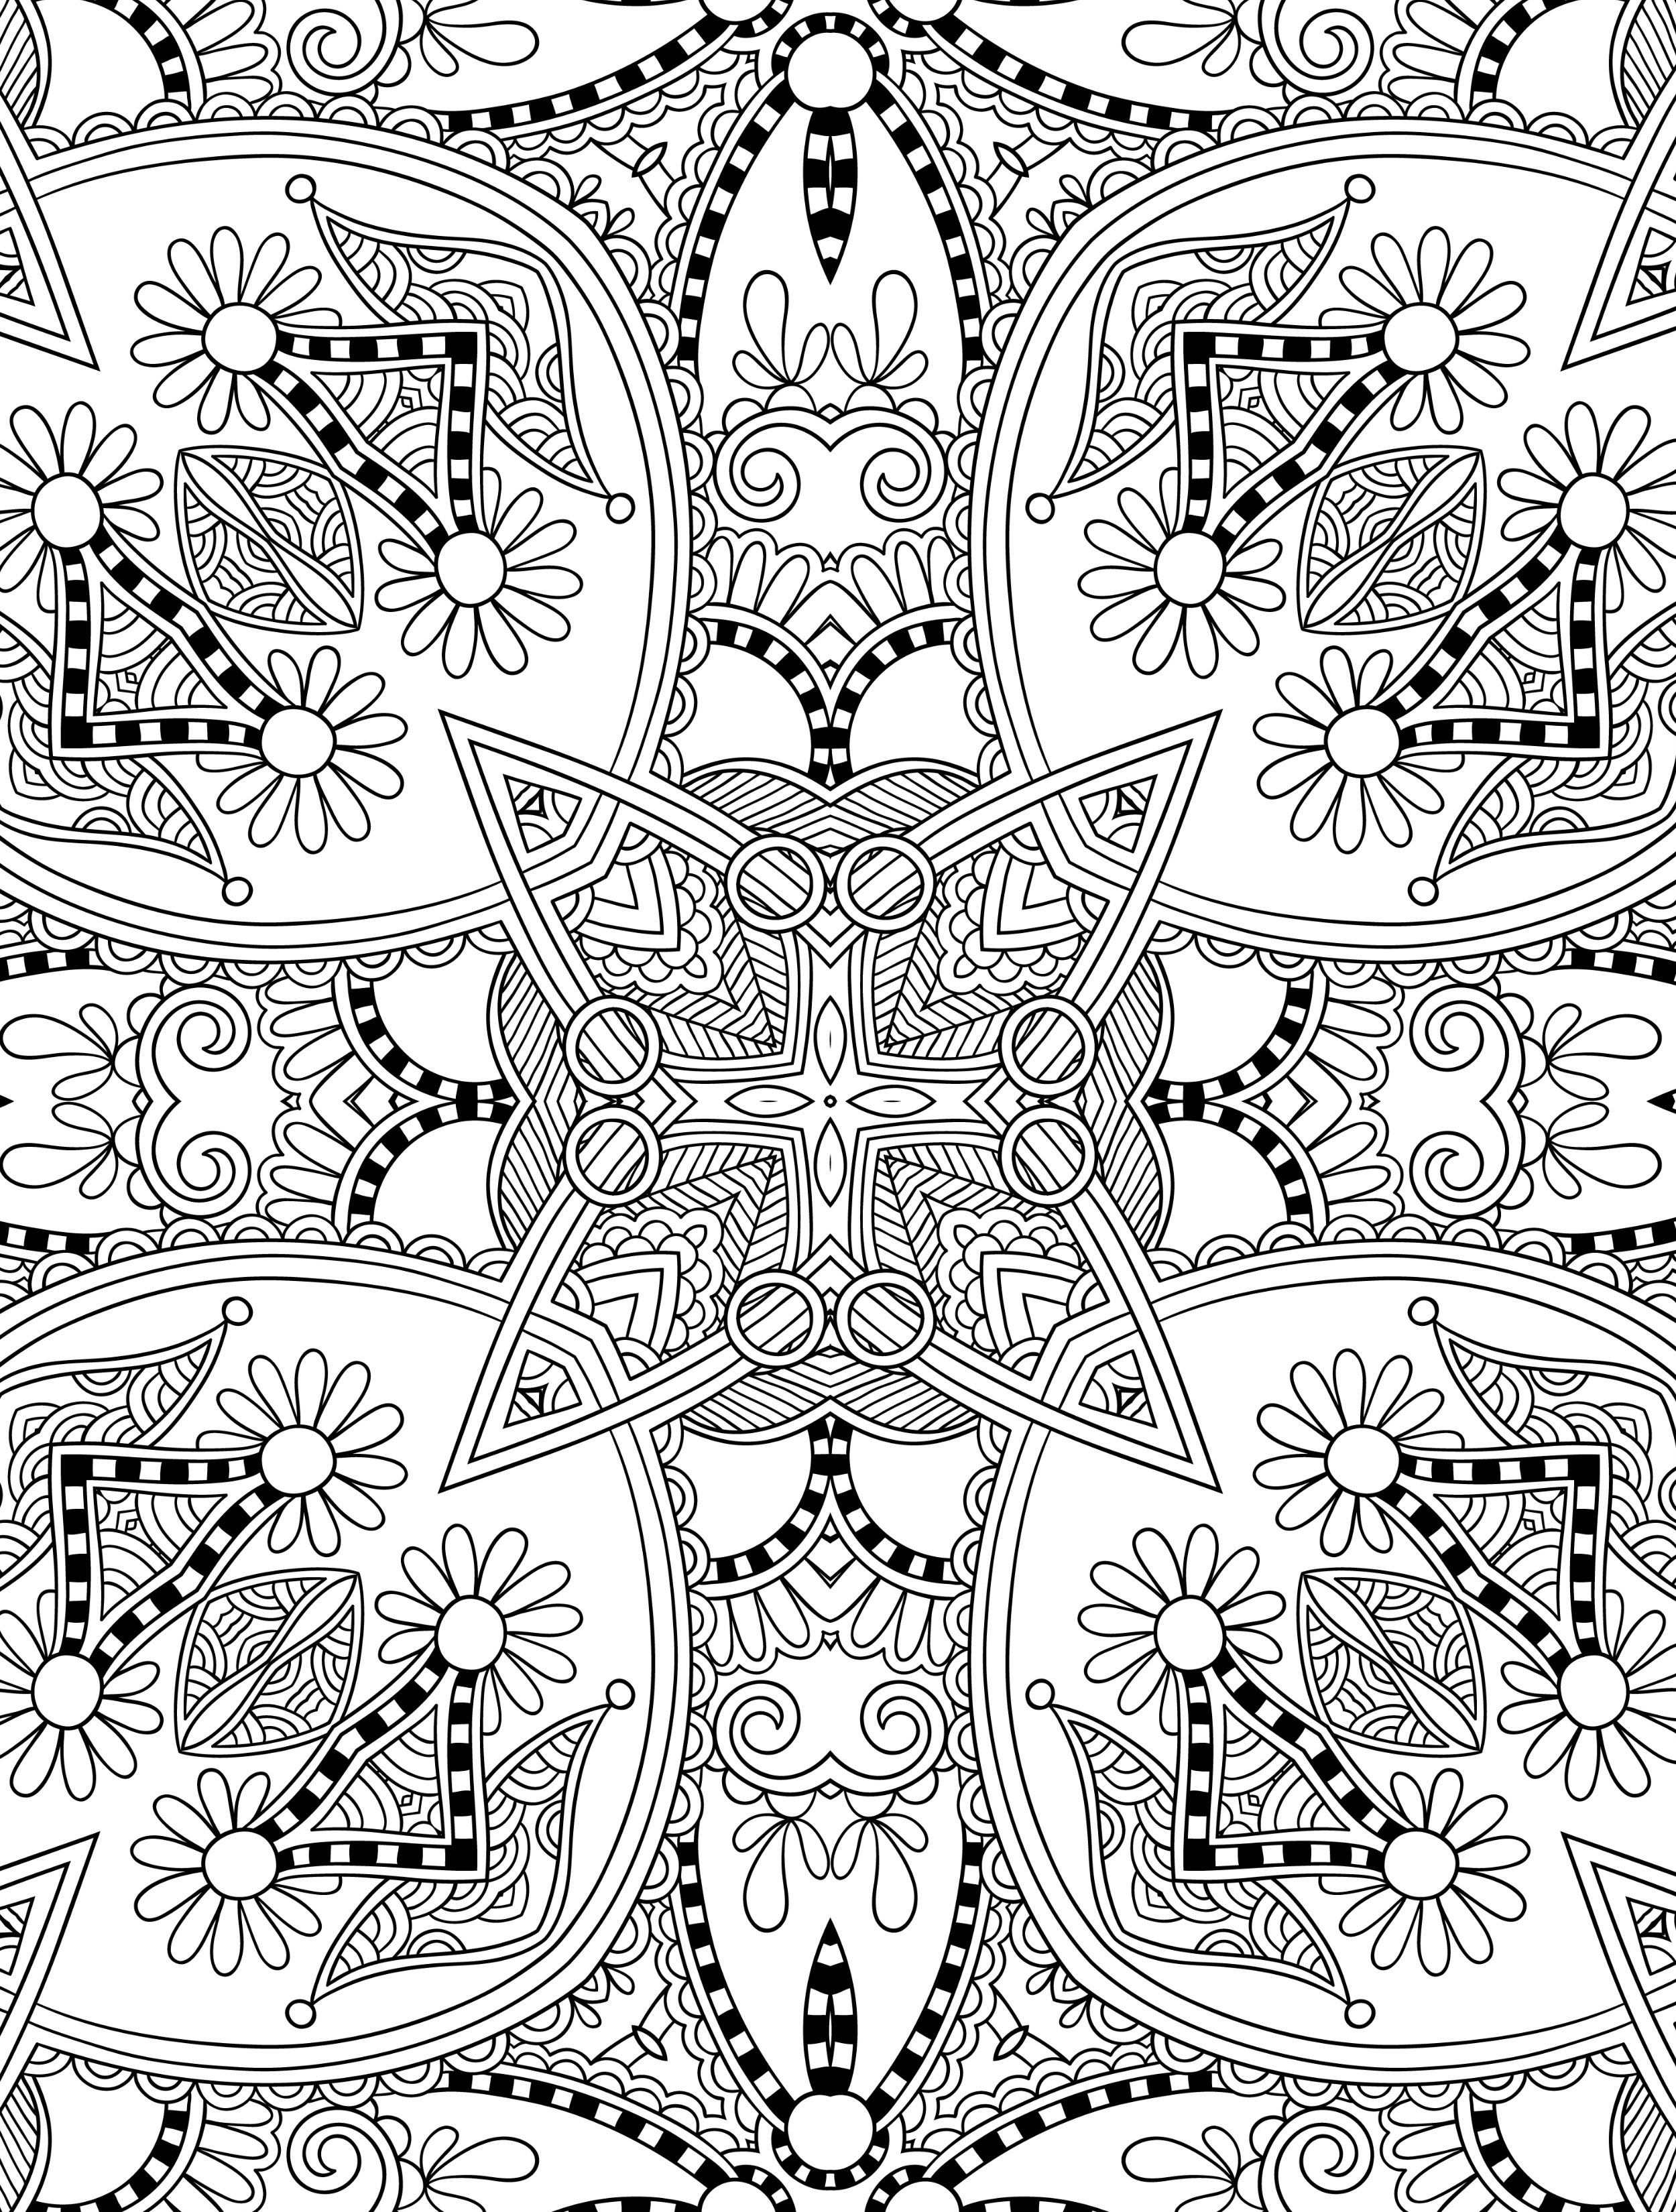 Free Coloring Pages For Adults Printable  10 Free Printable Holiday Adult Coloring Pages